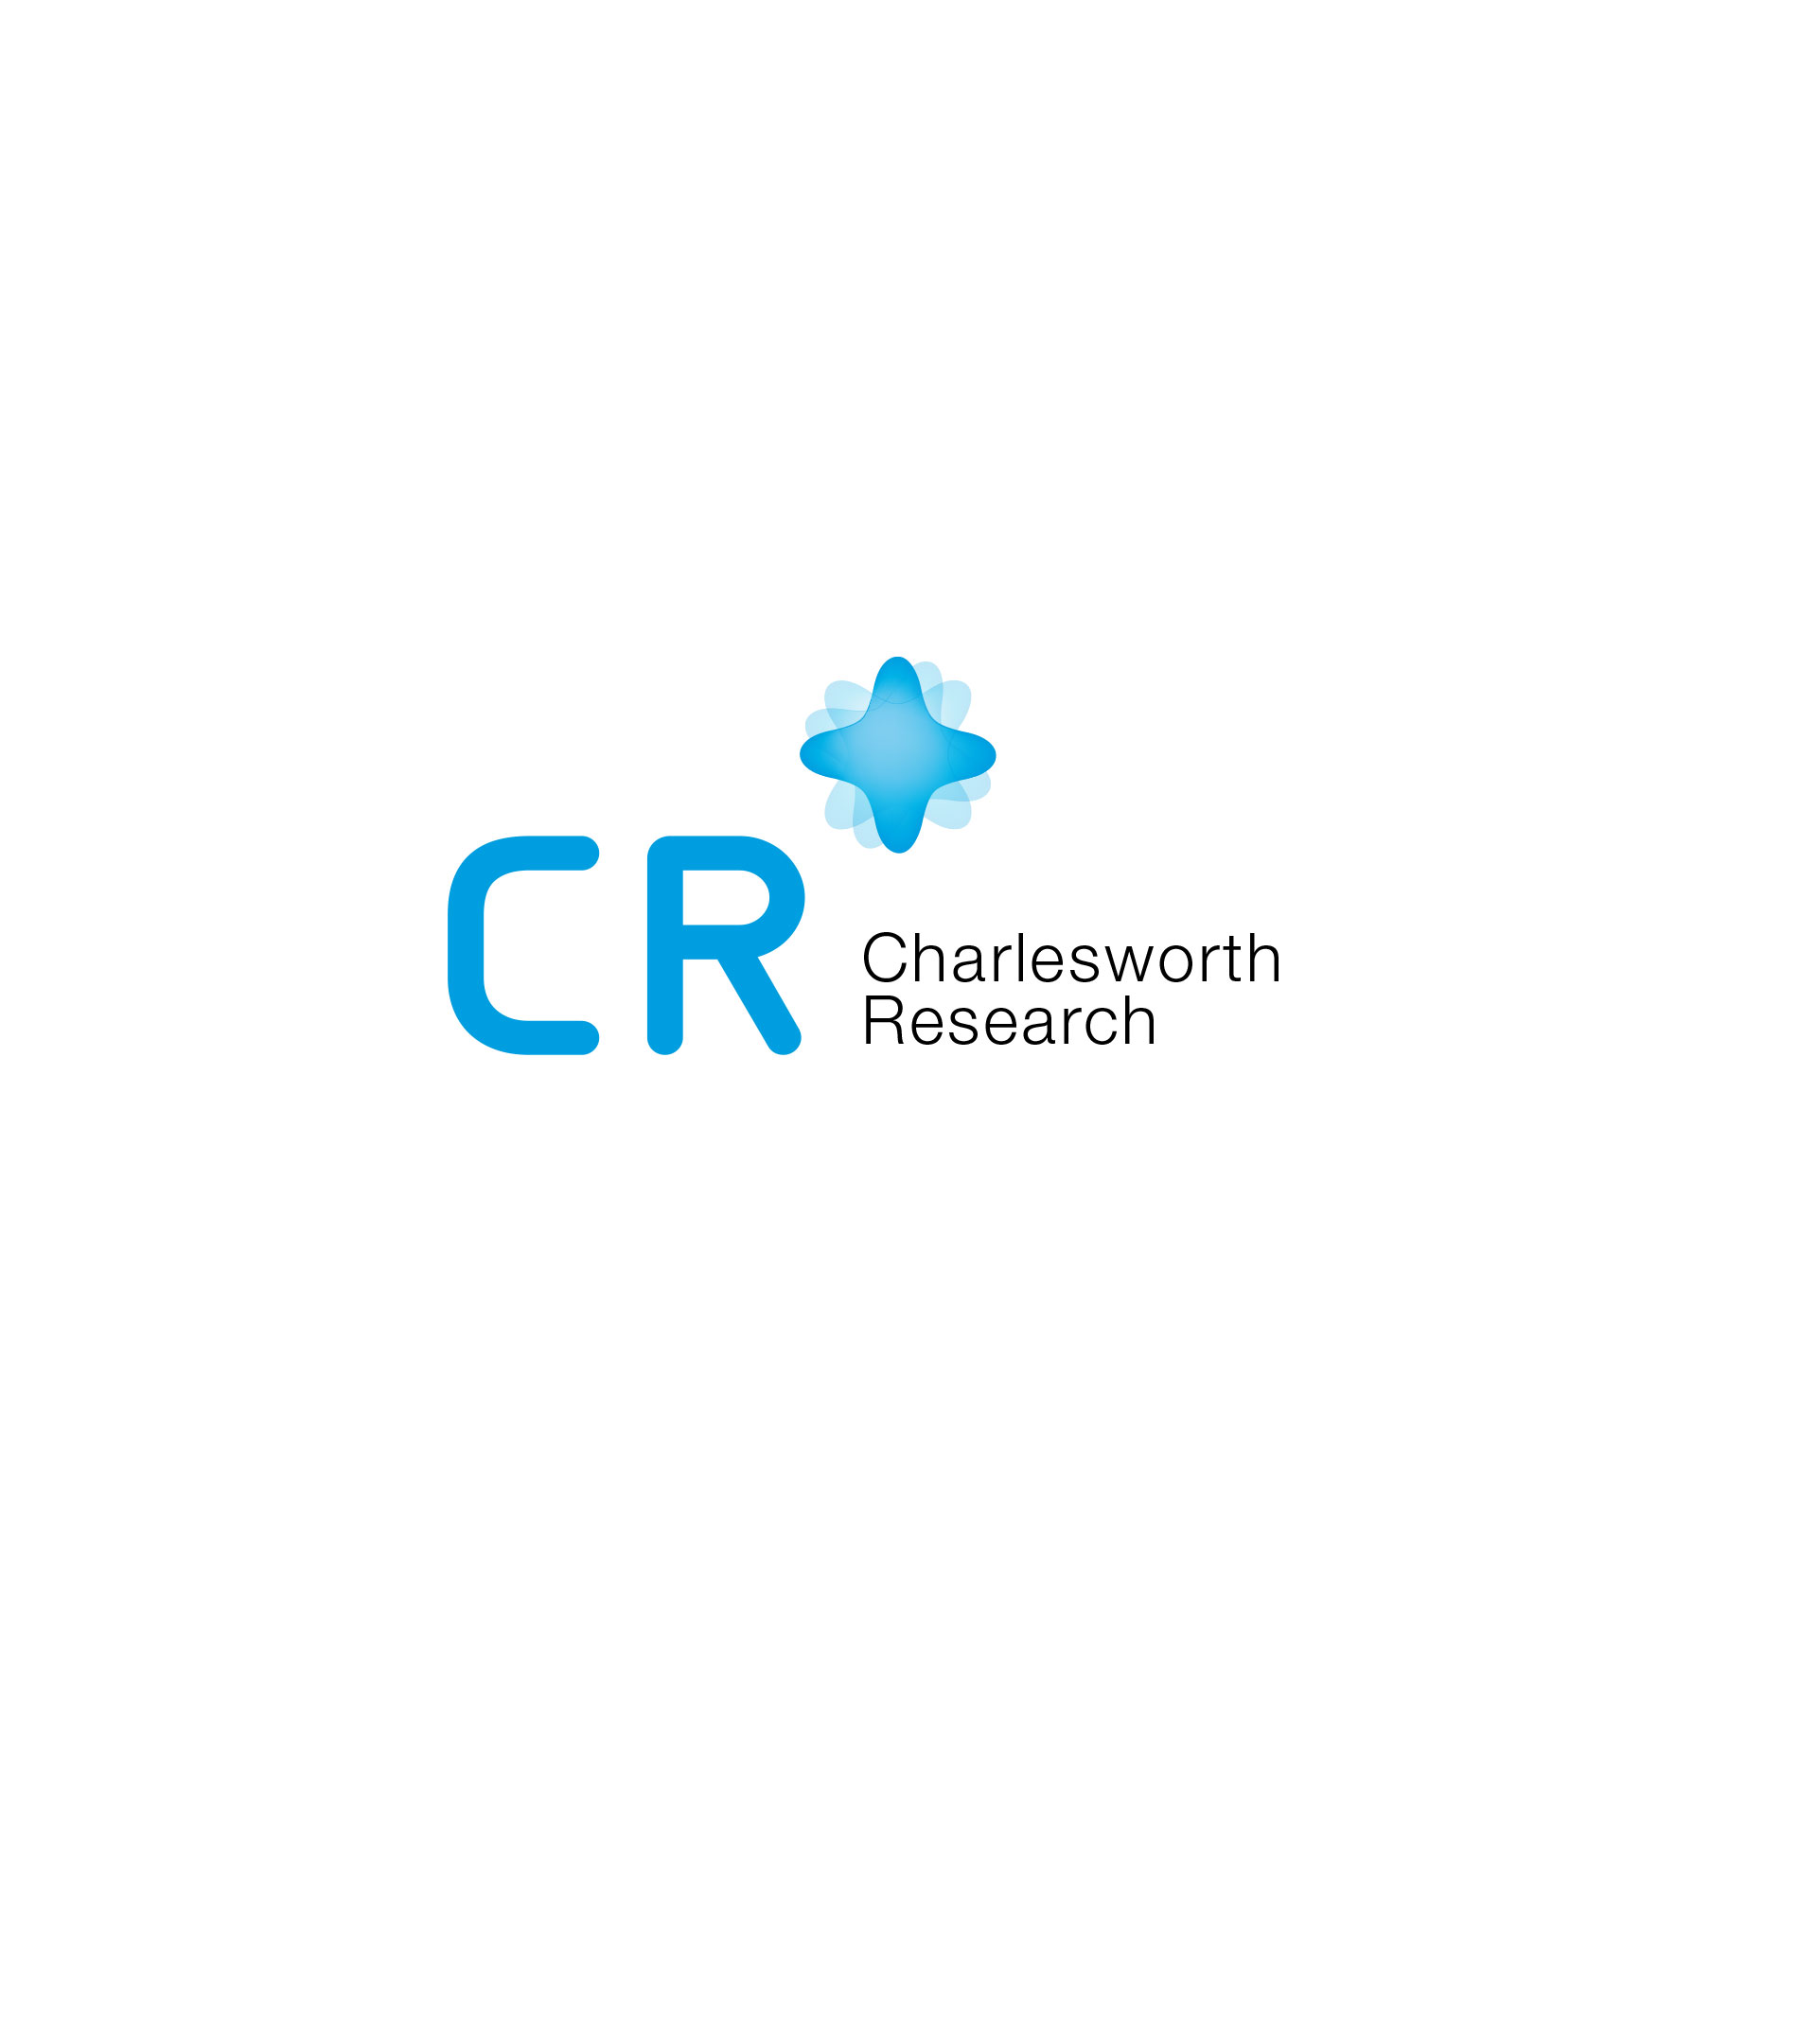 charlsowrth_reasearch logo